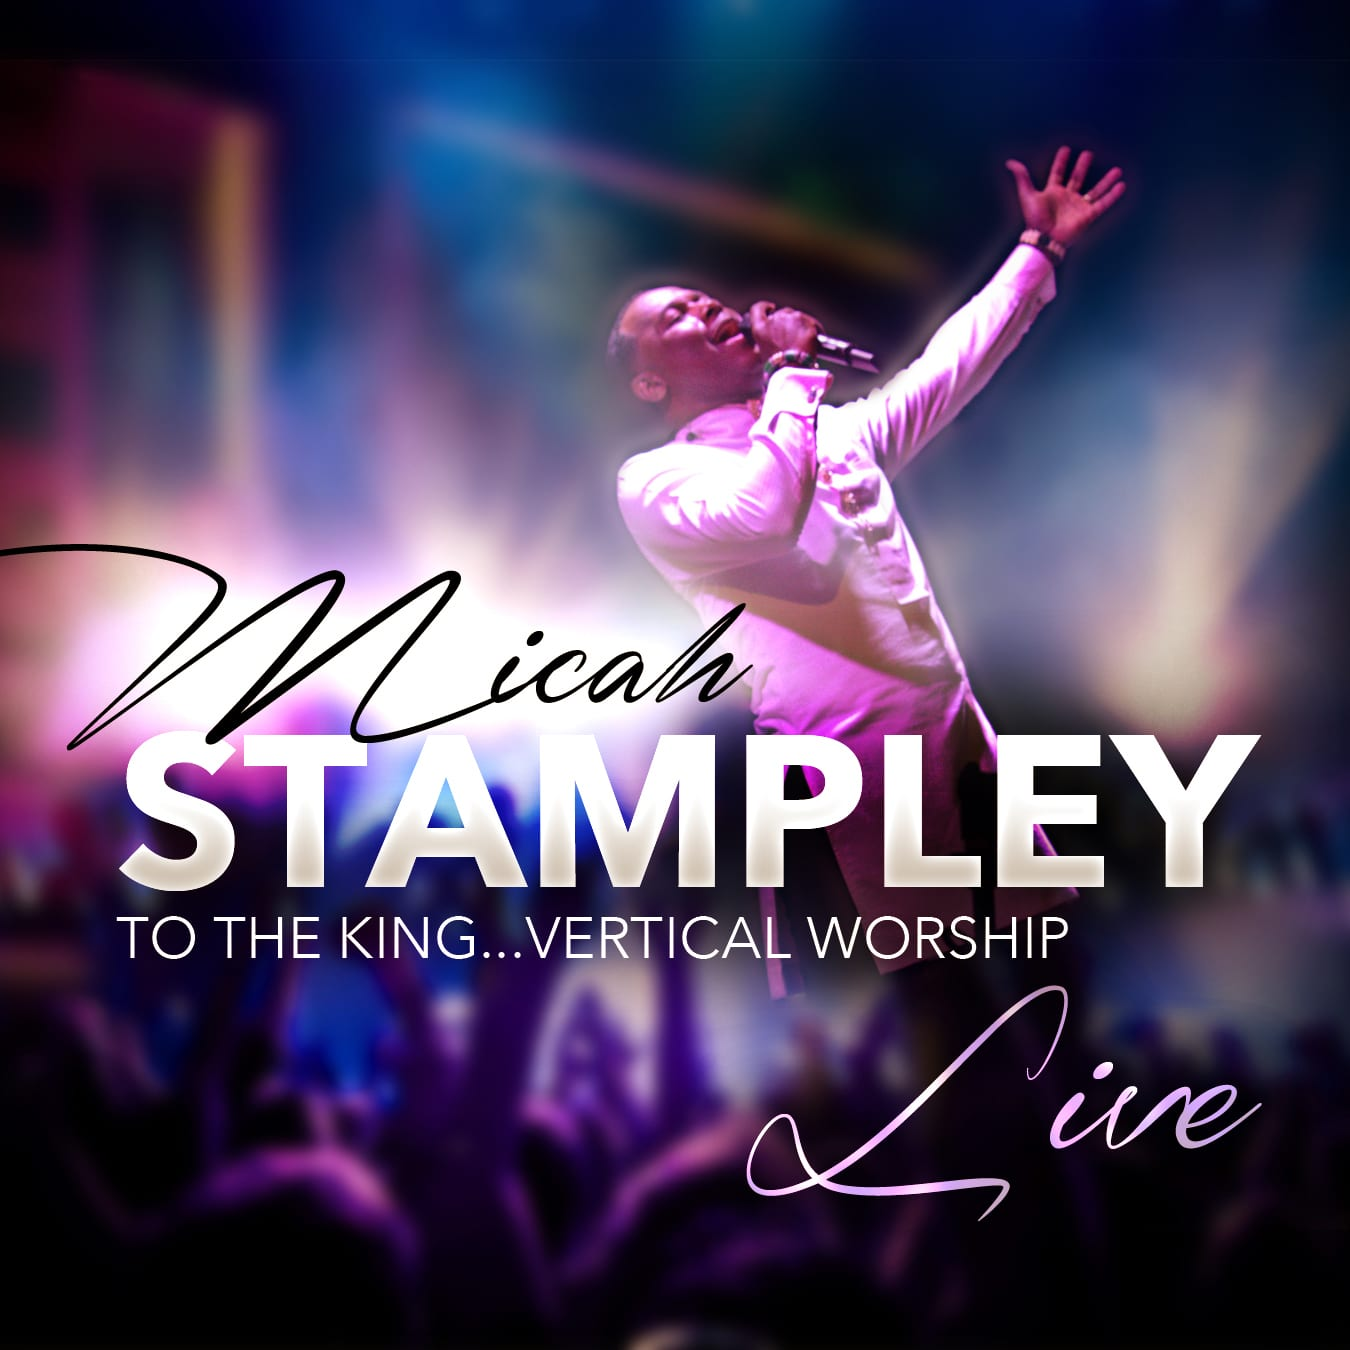 Micah-Stampley-Vertical-Worship